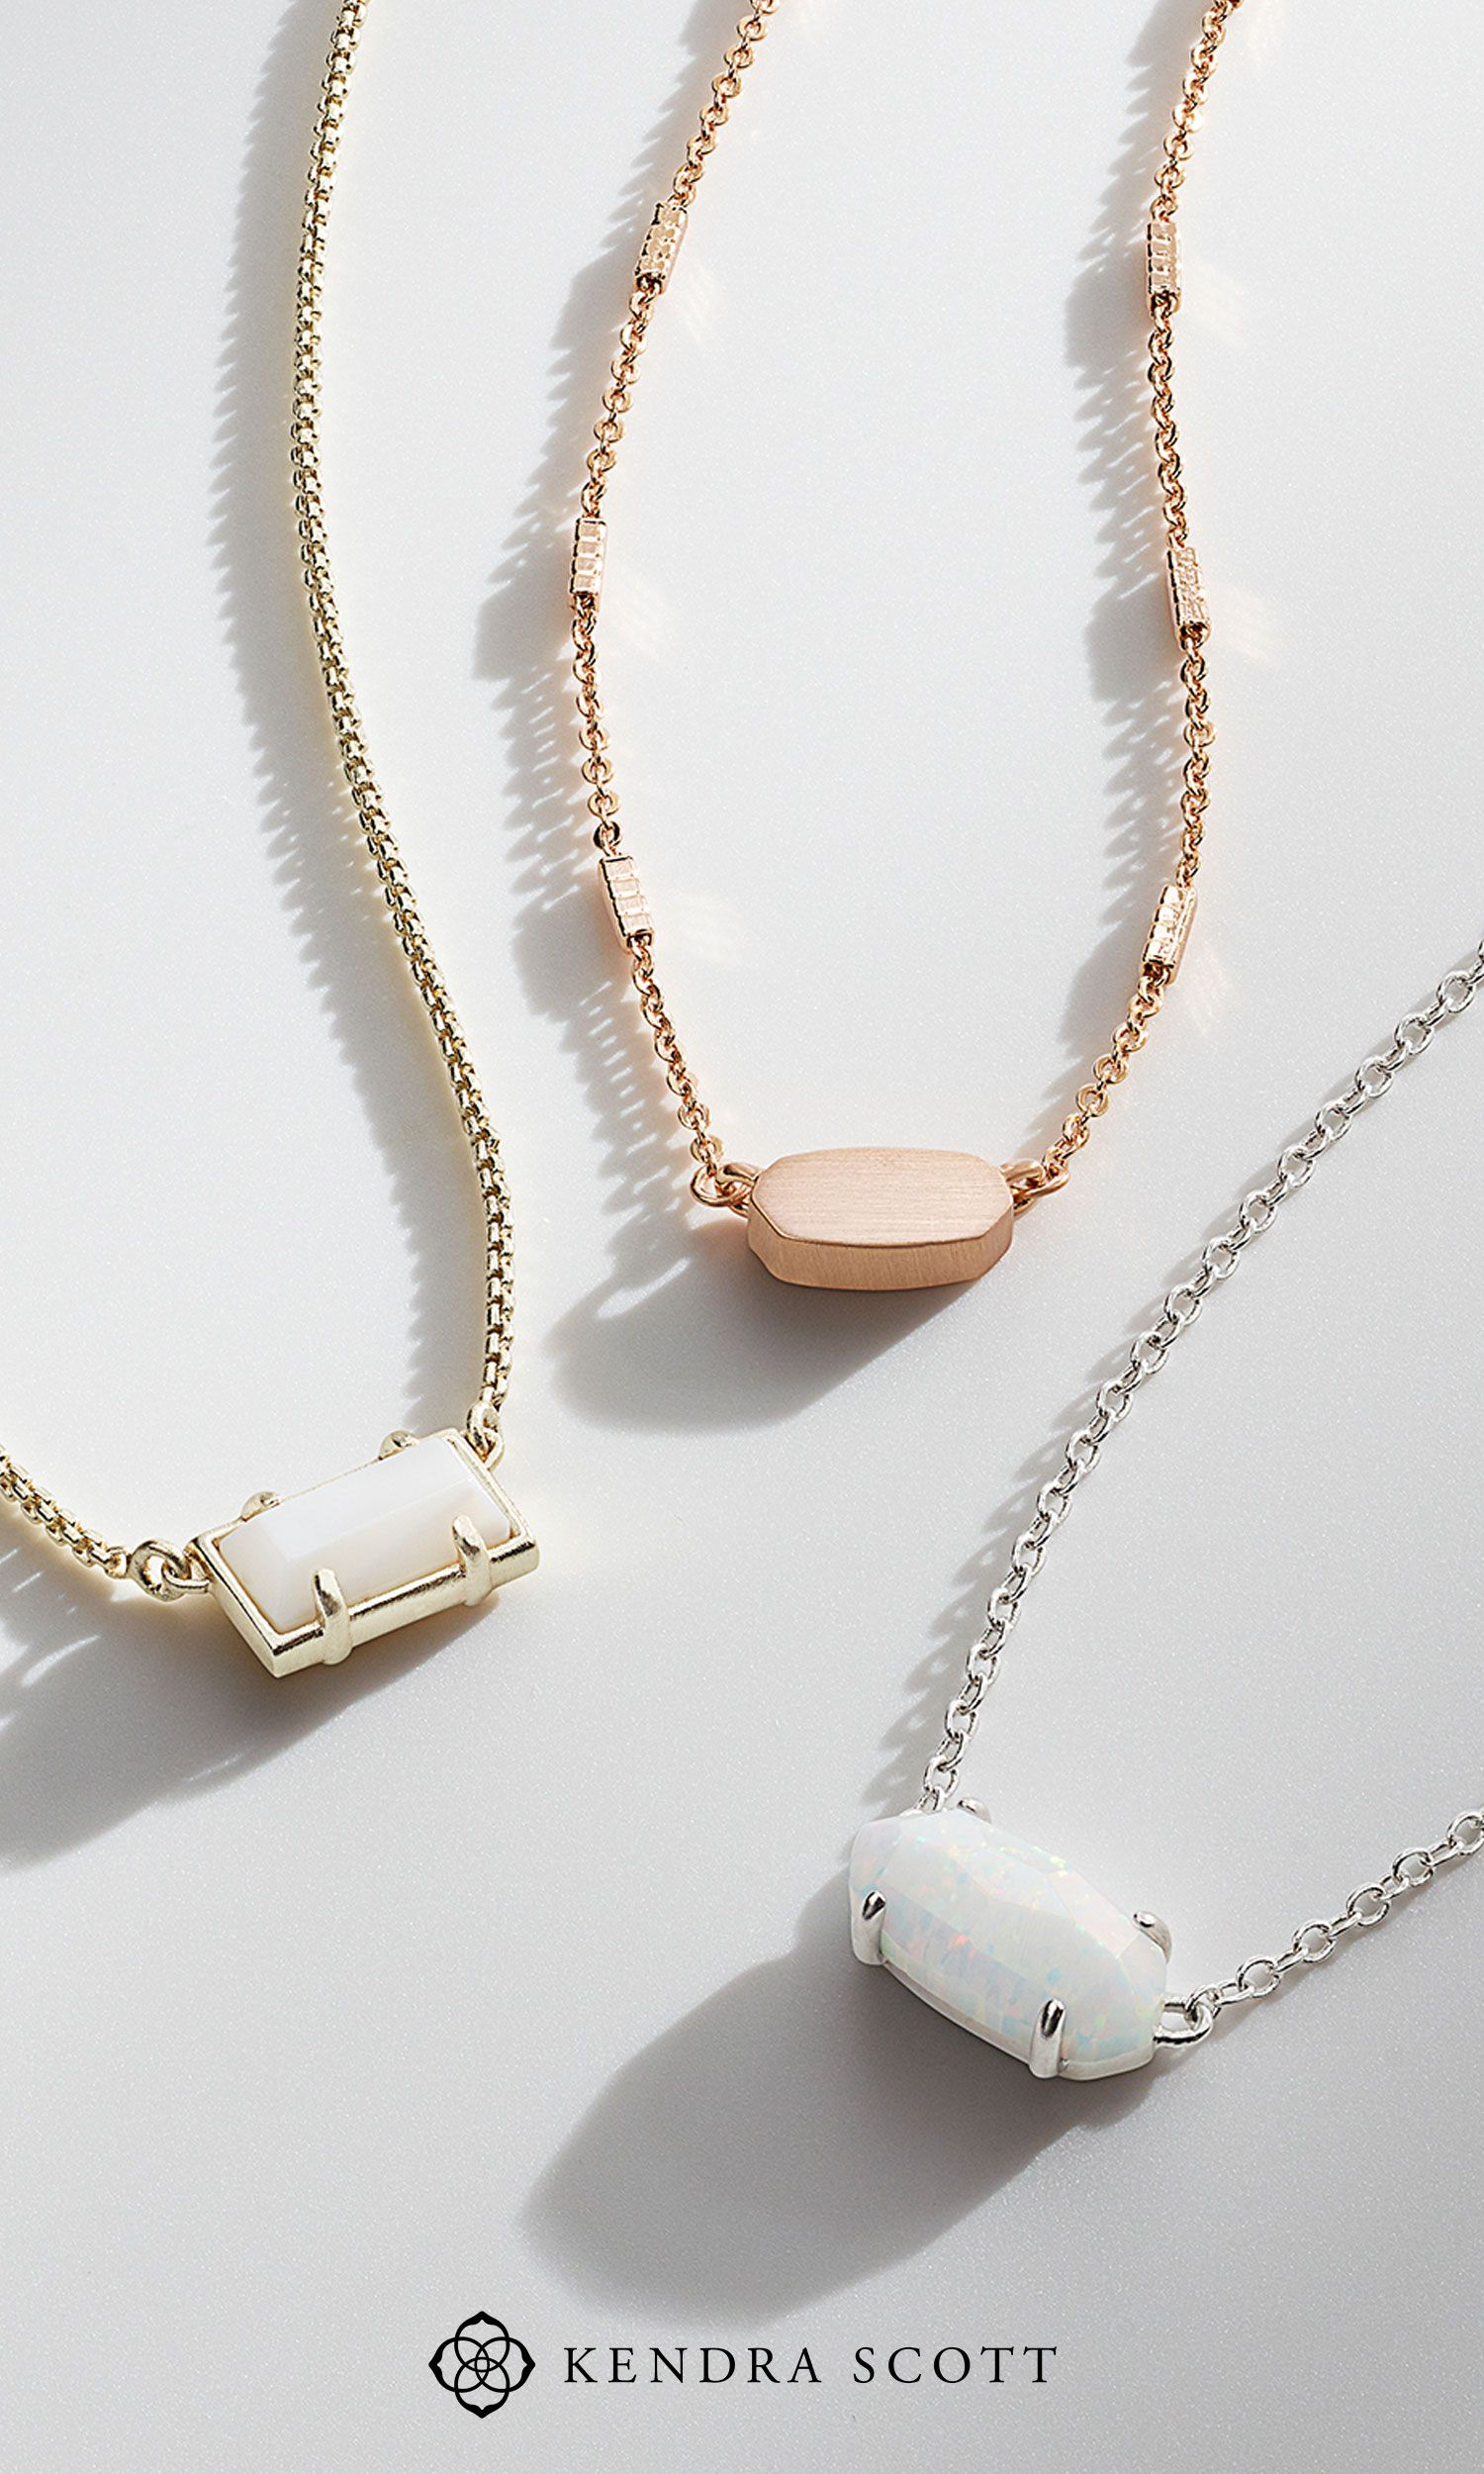 29+ Where can i get kendra scott jewelry information